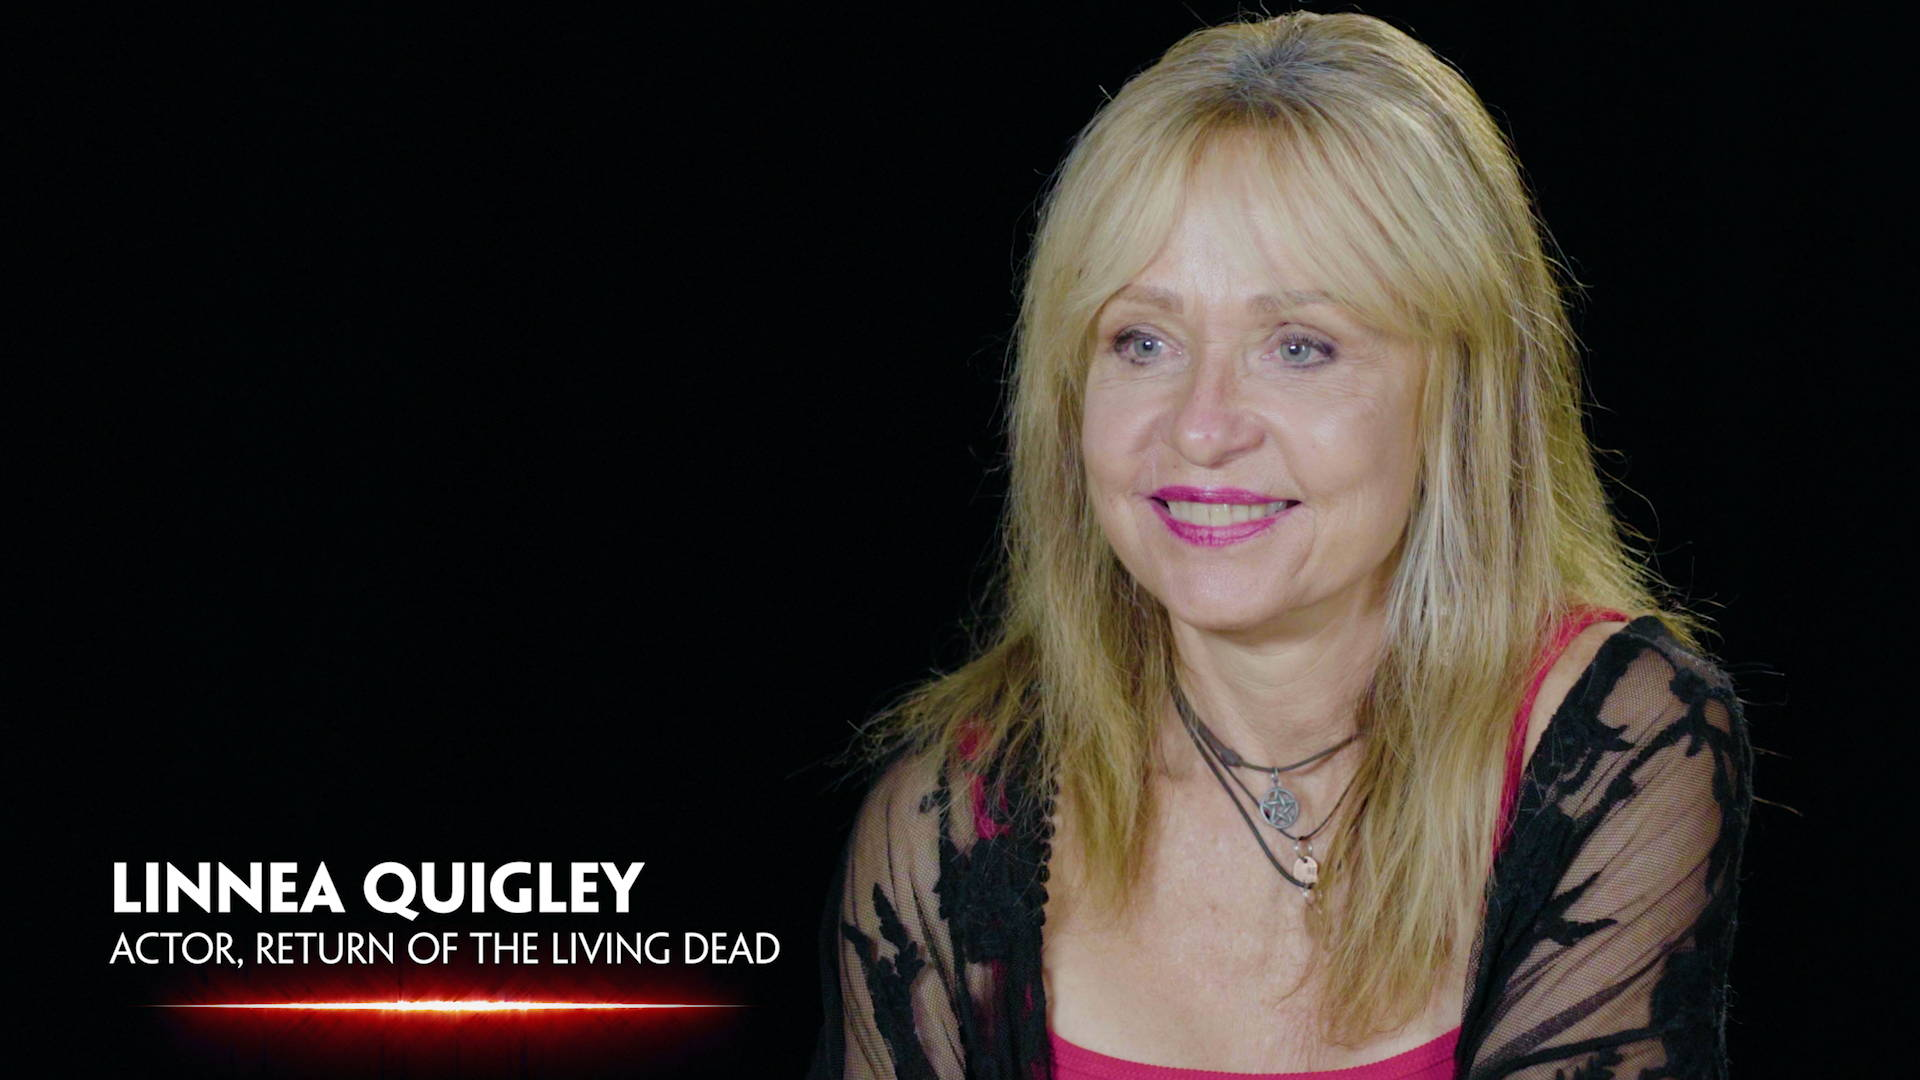 In Search of Darkness Part II: Linnea Quigley